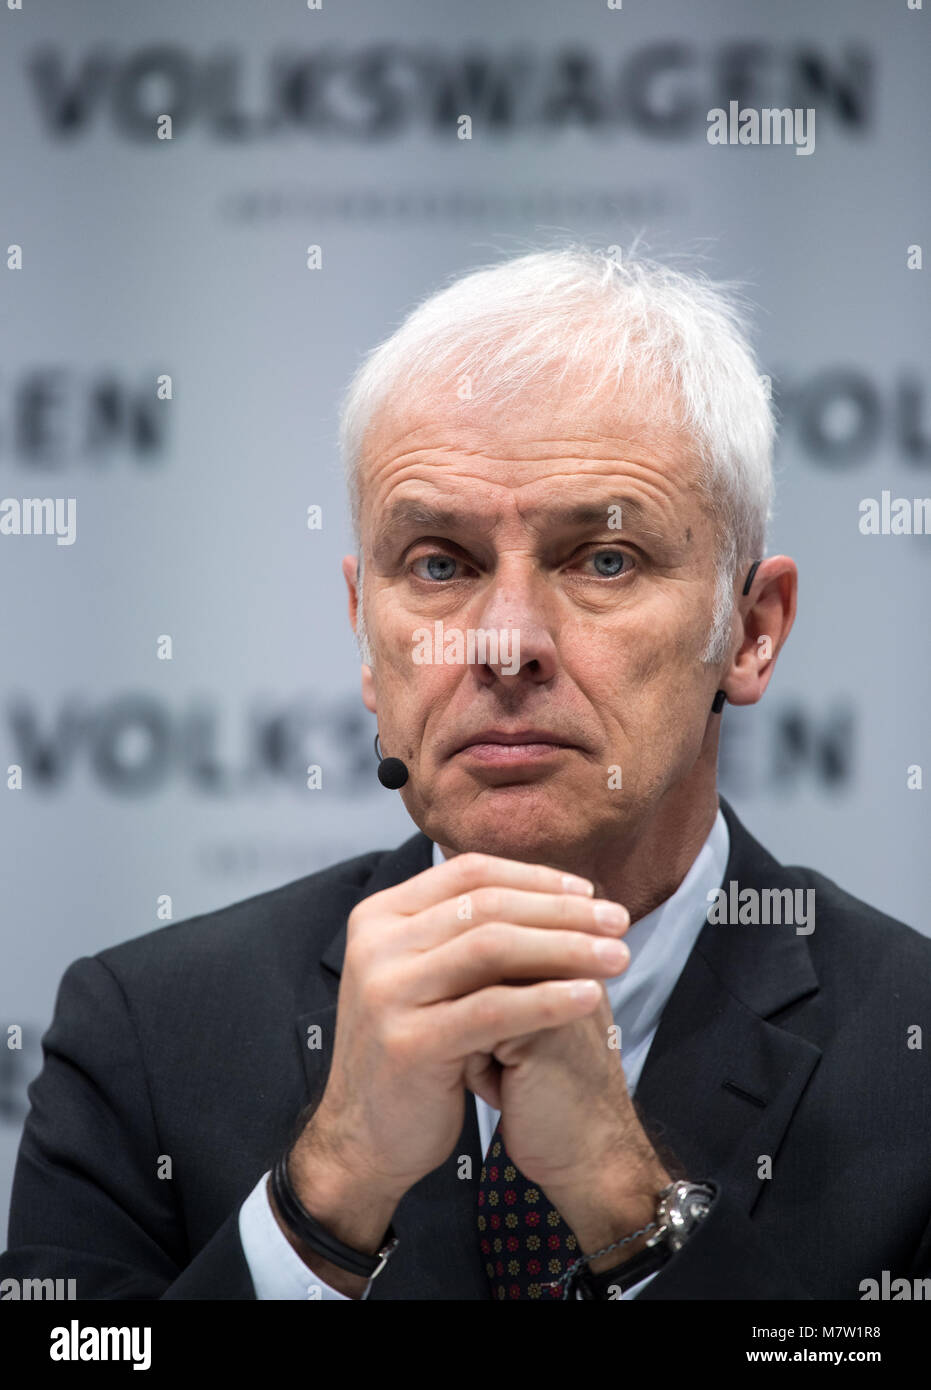 13 March 2018, Berlin: Matthias Mueller, chairman of the board of Volkswagen AG, presenting the automotive enterprise's Stock Photo